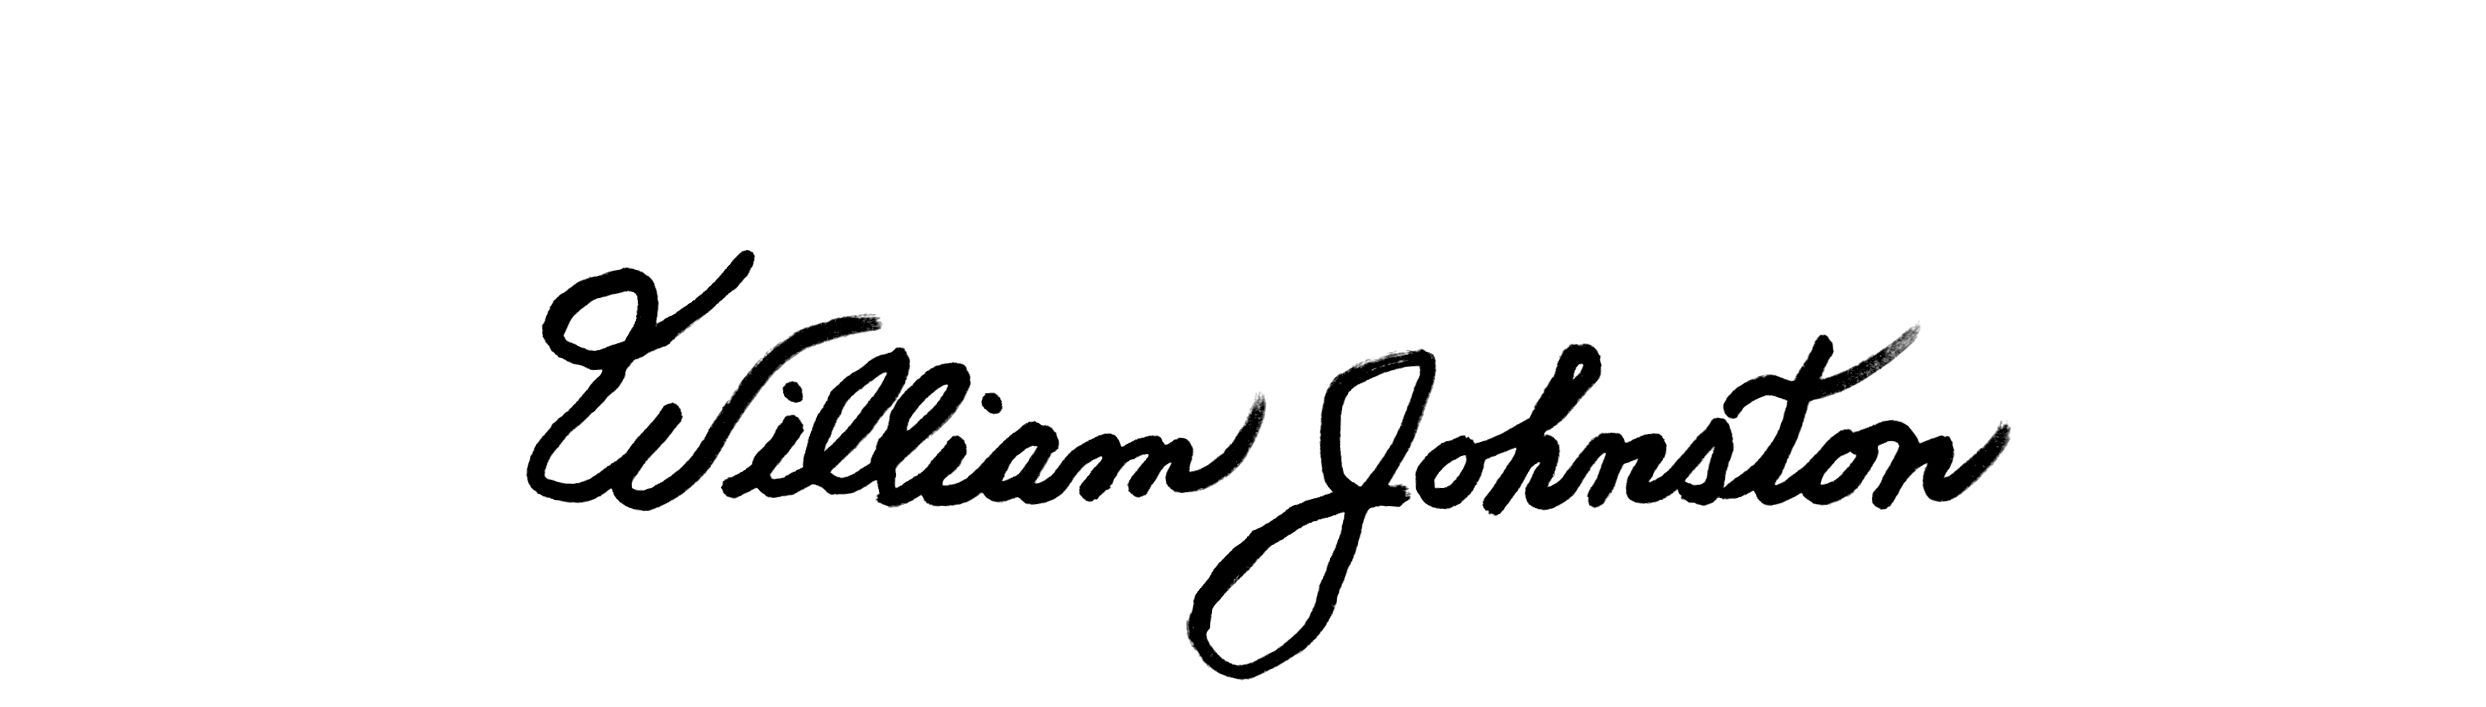 William Johnston's Signature